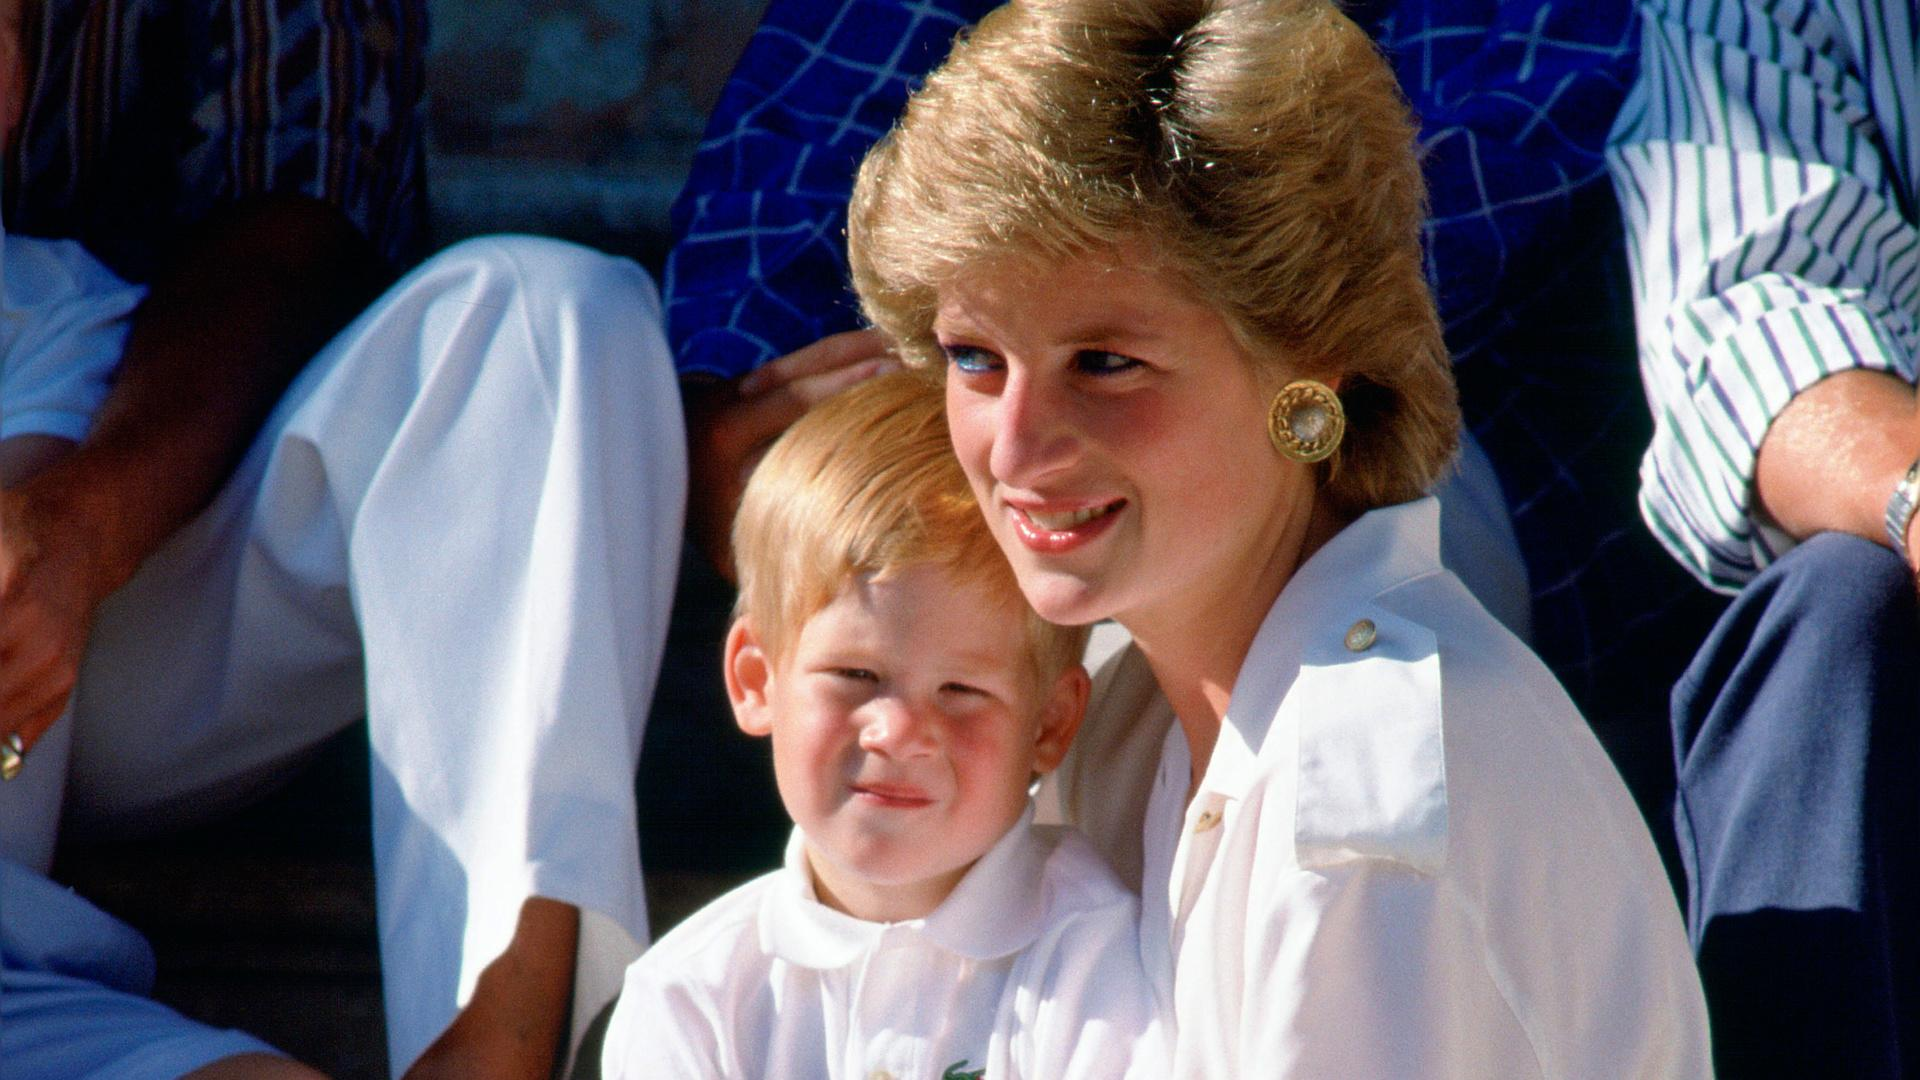 Prince Harry Completely Opens Up About Princess Diana's Death